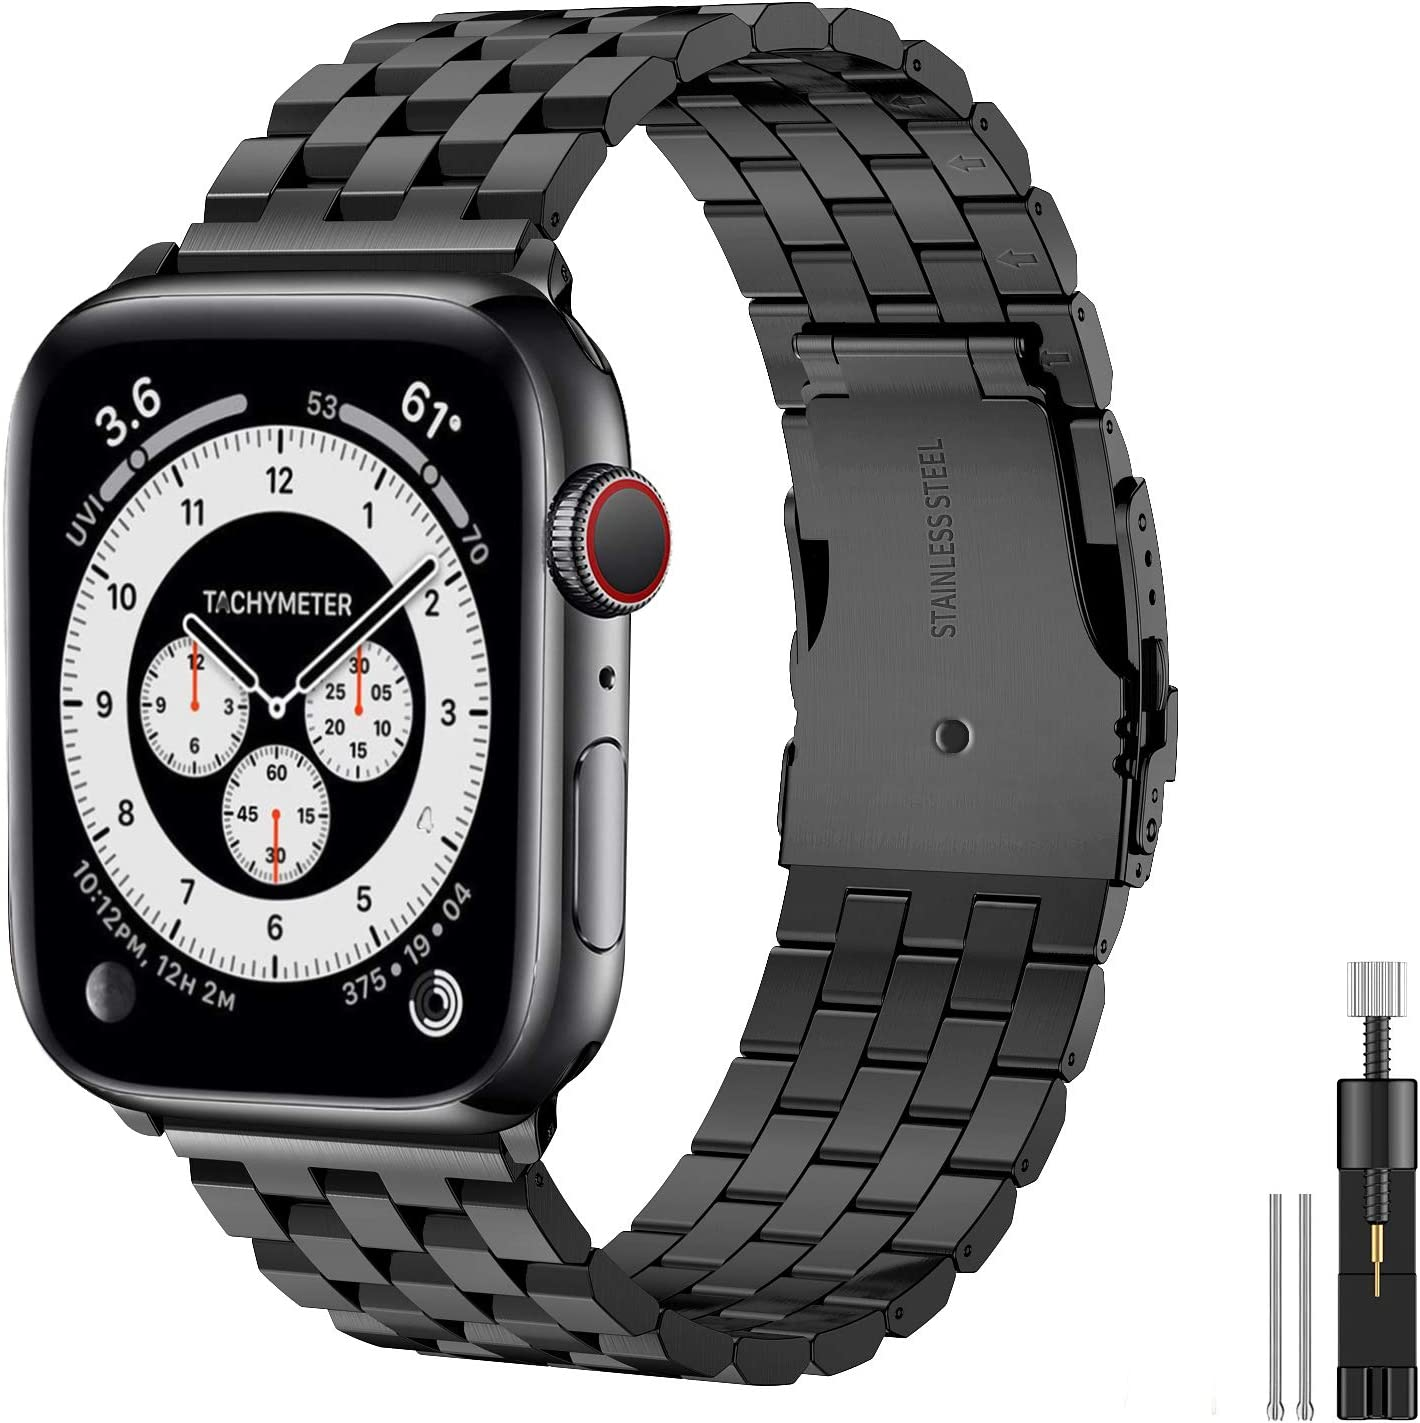 Hallsen Compatible with Apple Watch Bands 40mm 38mm, Upgraded Solid Stainless Steel Metal Apple Watch Band iWatch Replacement Strap for Apple Watch Series 6/5/4/3/2/1/SE(Black, 38/40mm)